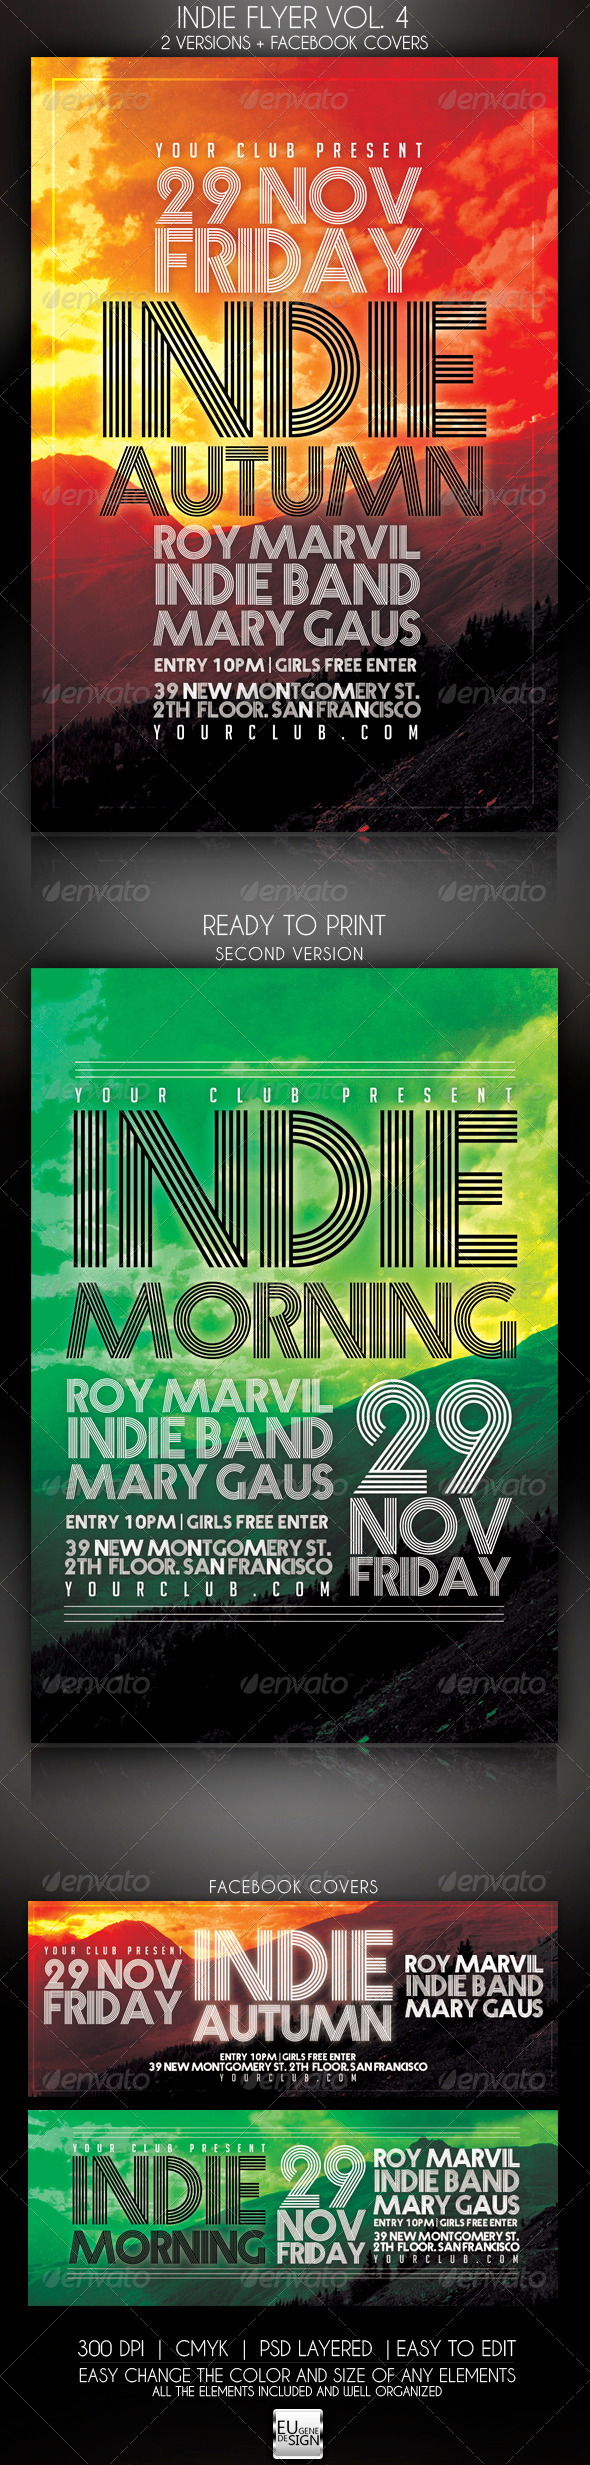 GraphicRiver Indie Flyer Vol 4 5821473